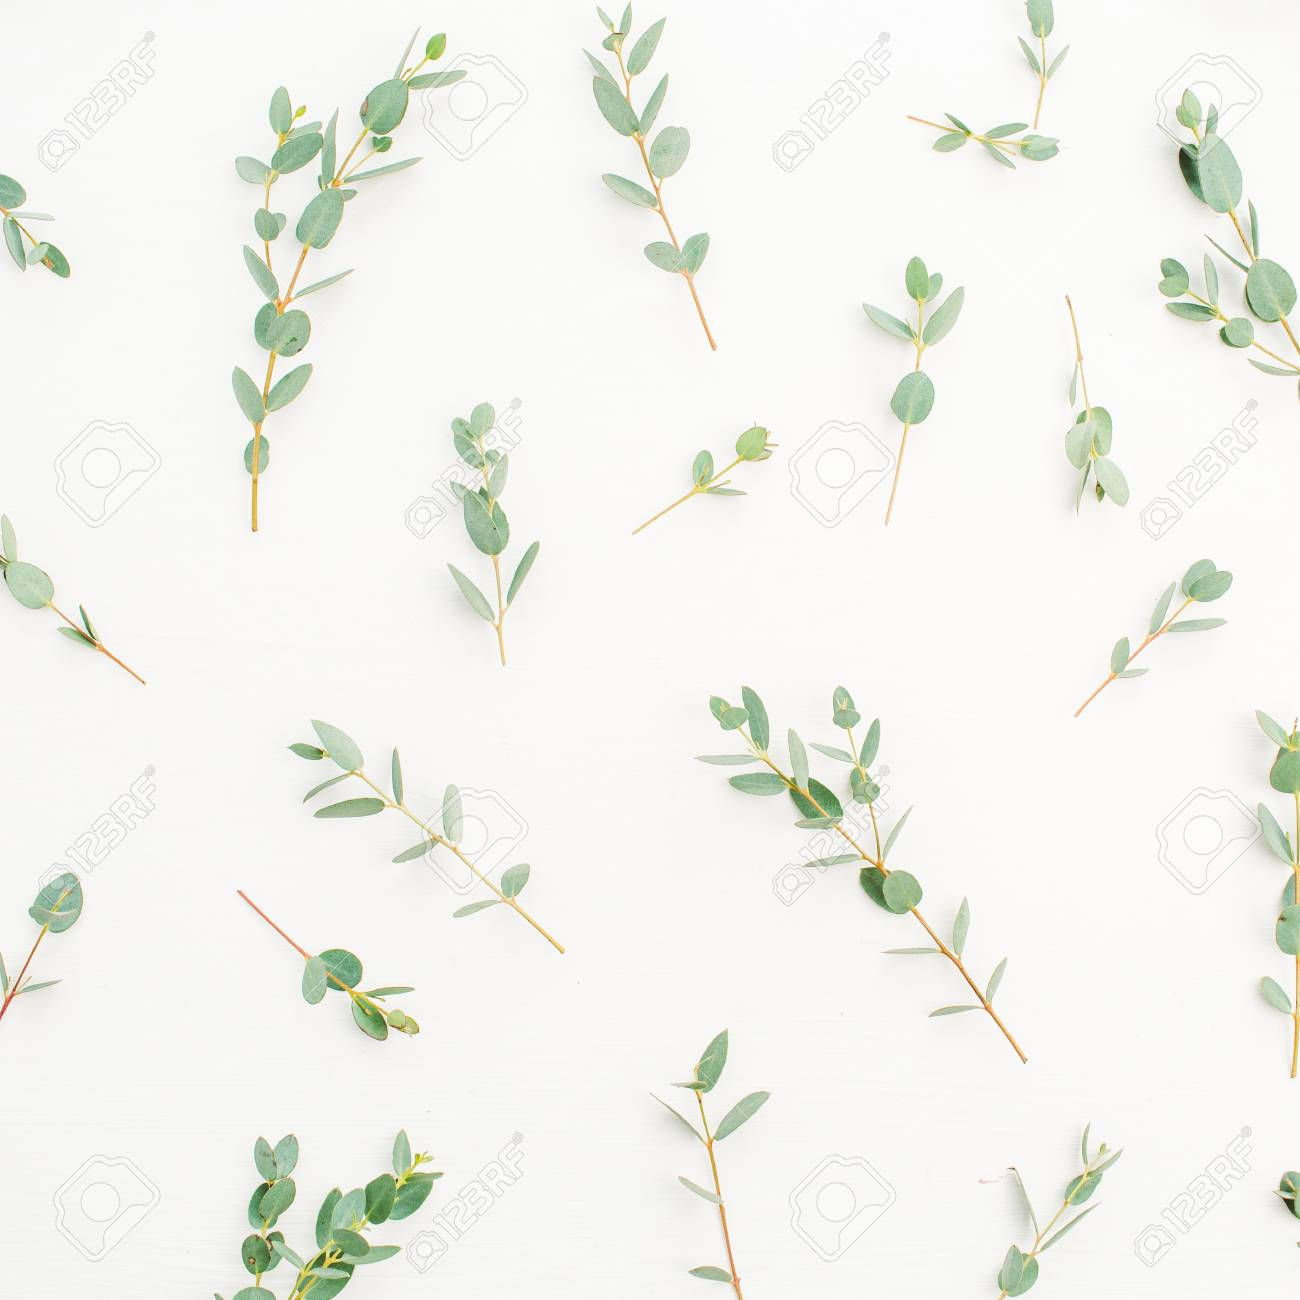 96819464 eucalyptus branch pattern on white background flat lay top view